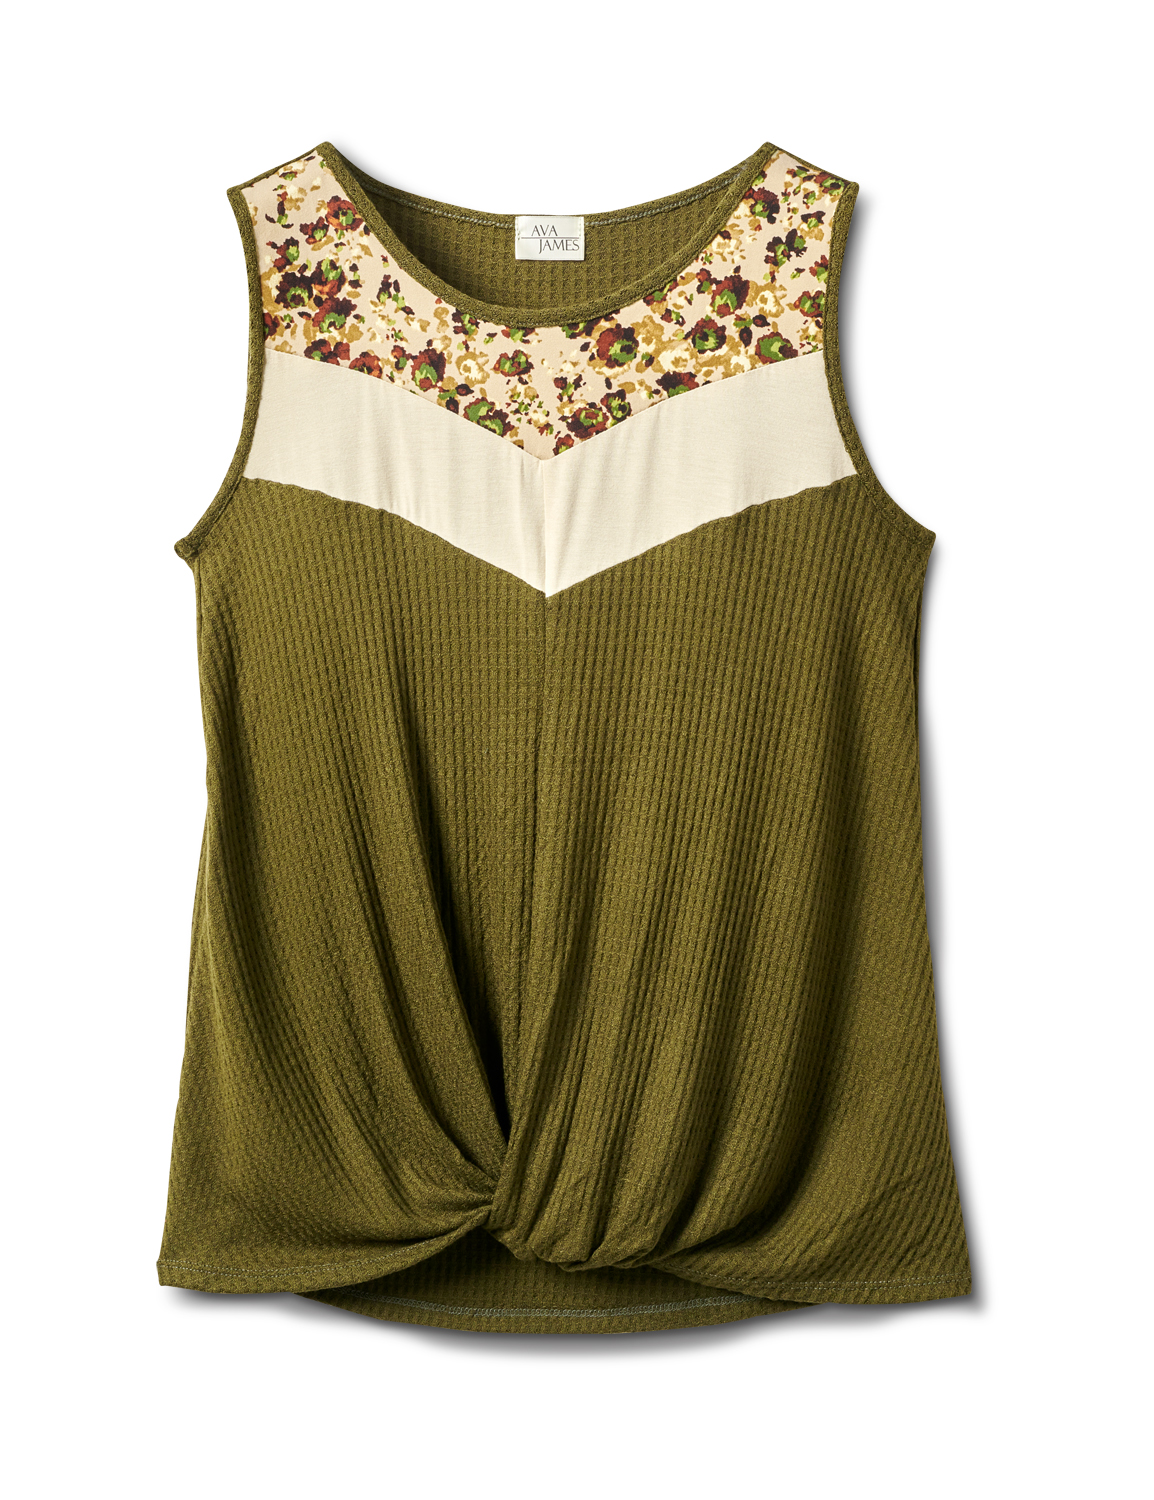 Mixed Camo Knot Front Knit Top -Olive - Front